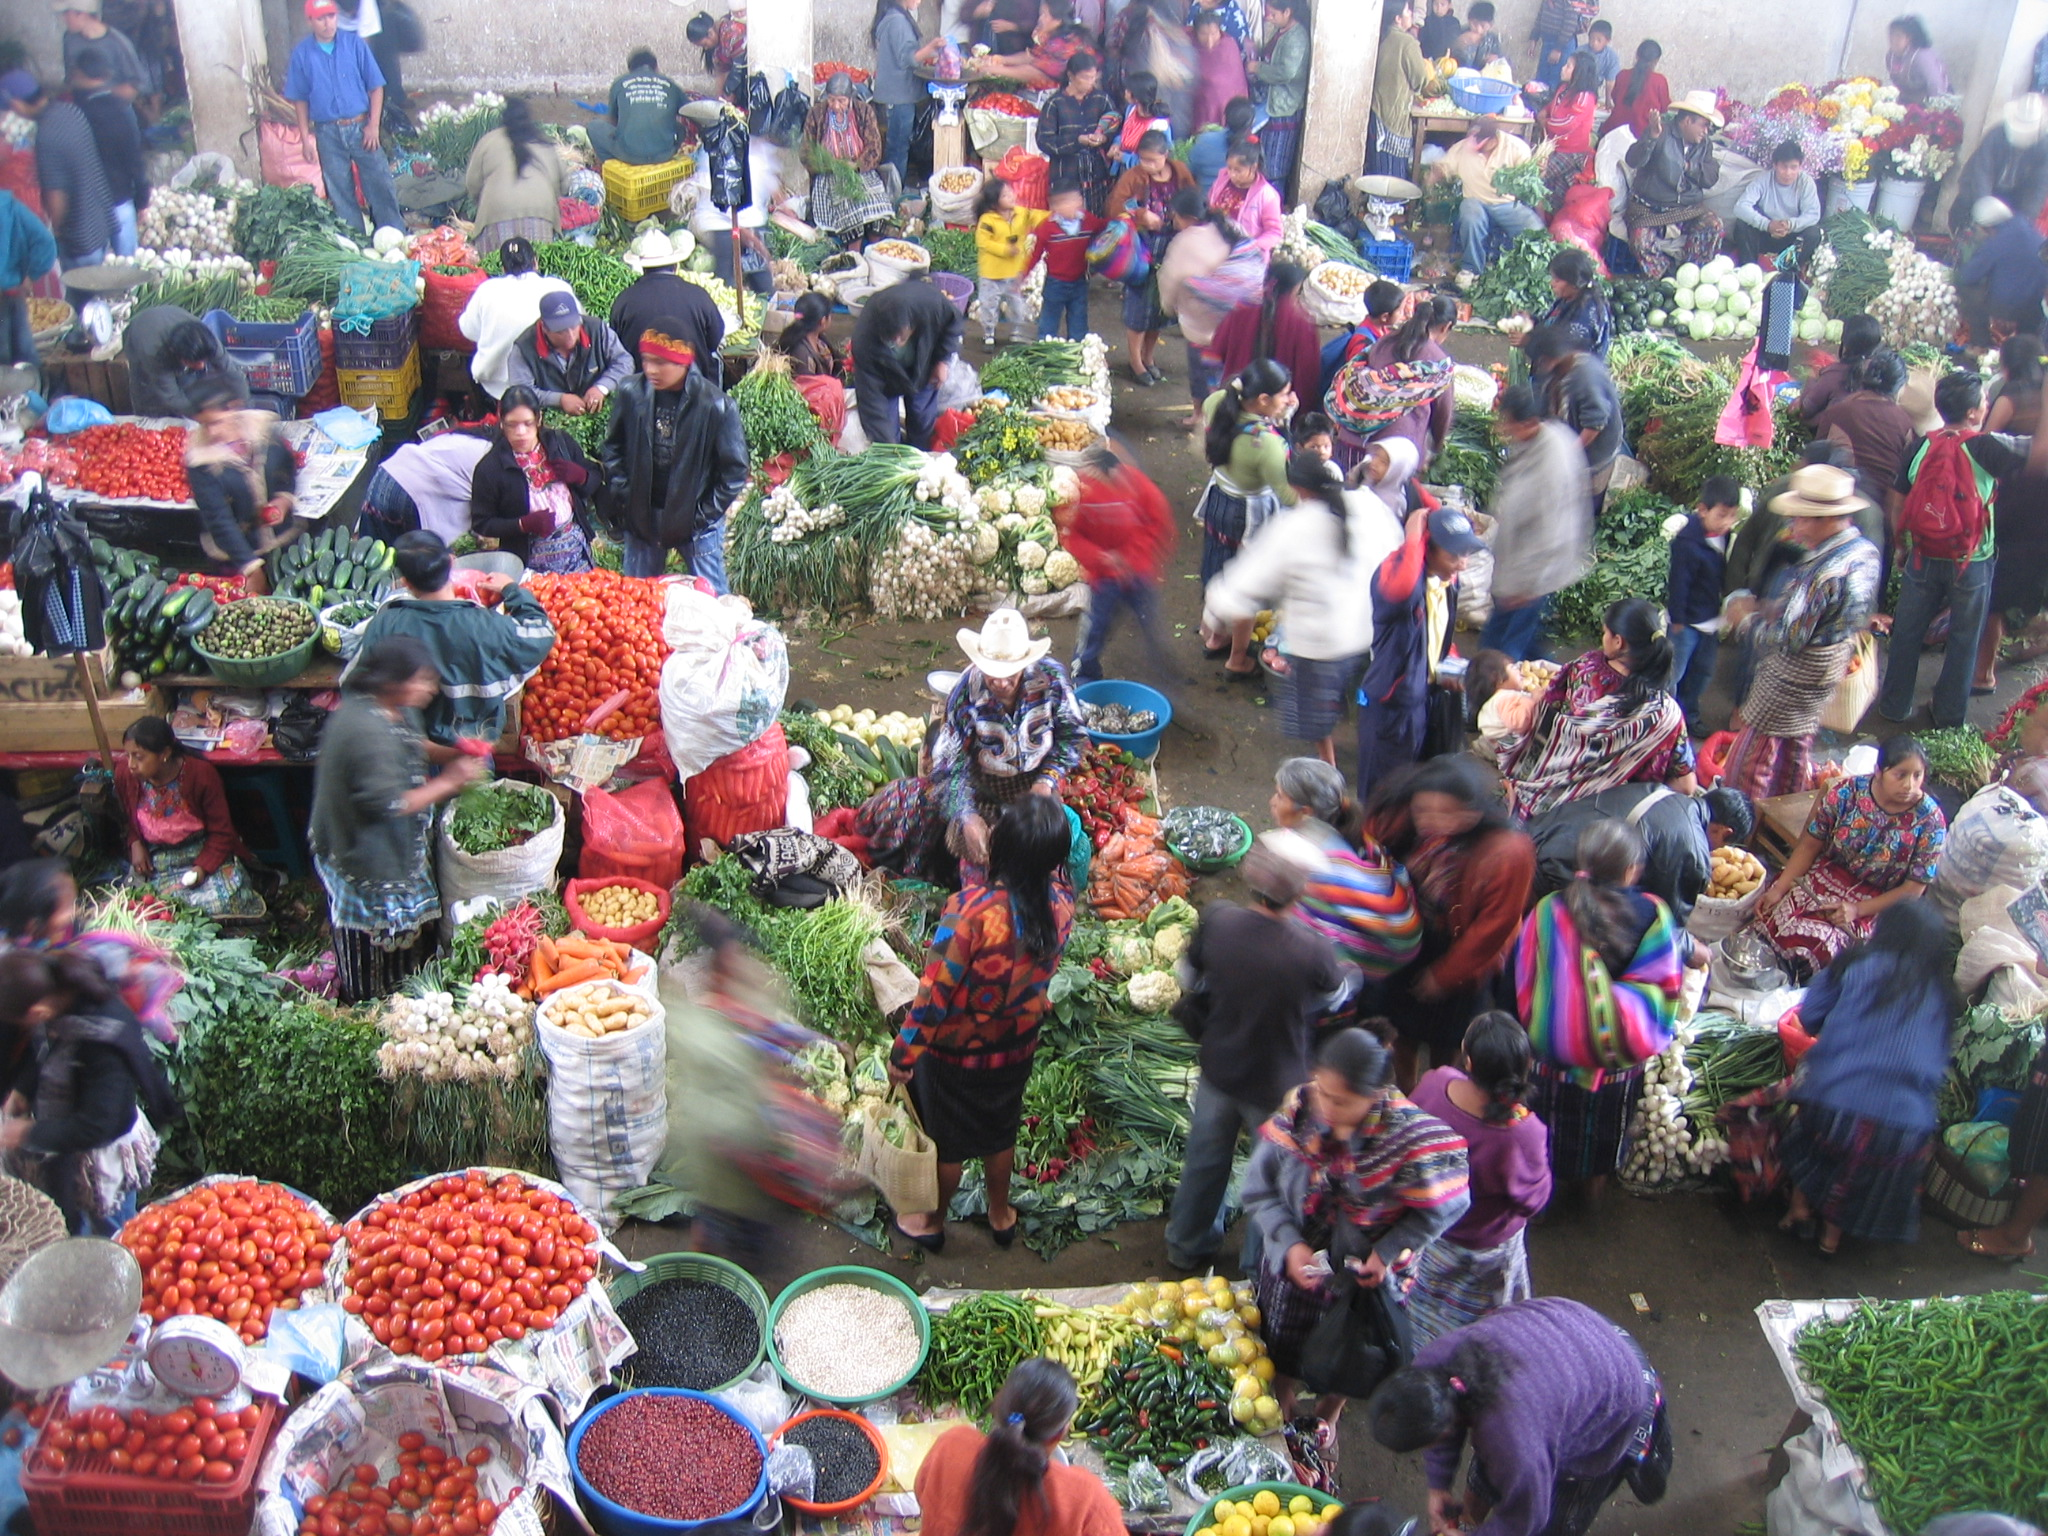 Busy foreign fruit and flower market - Matthew Lightfoot